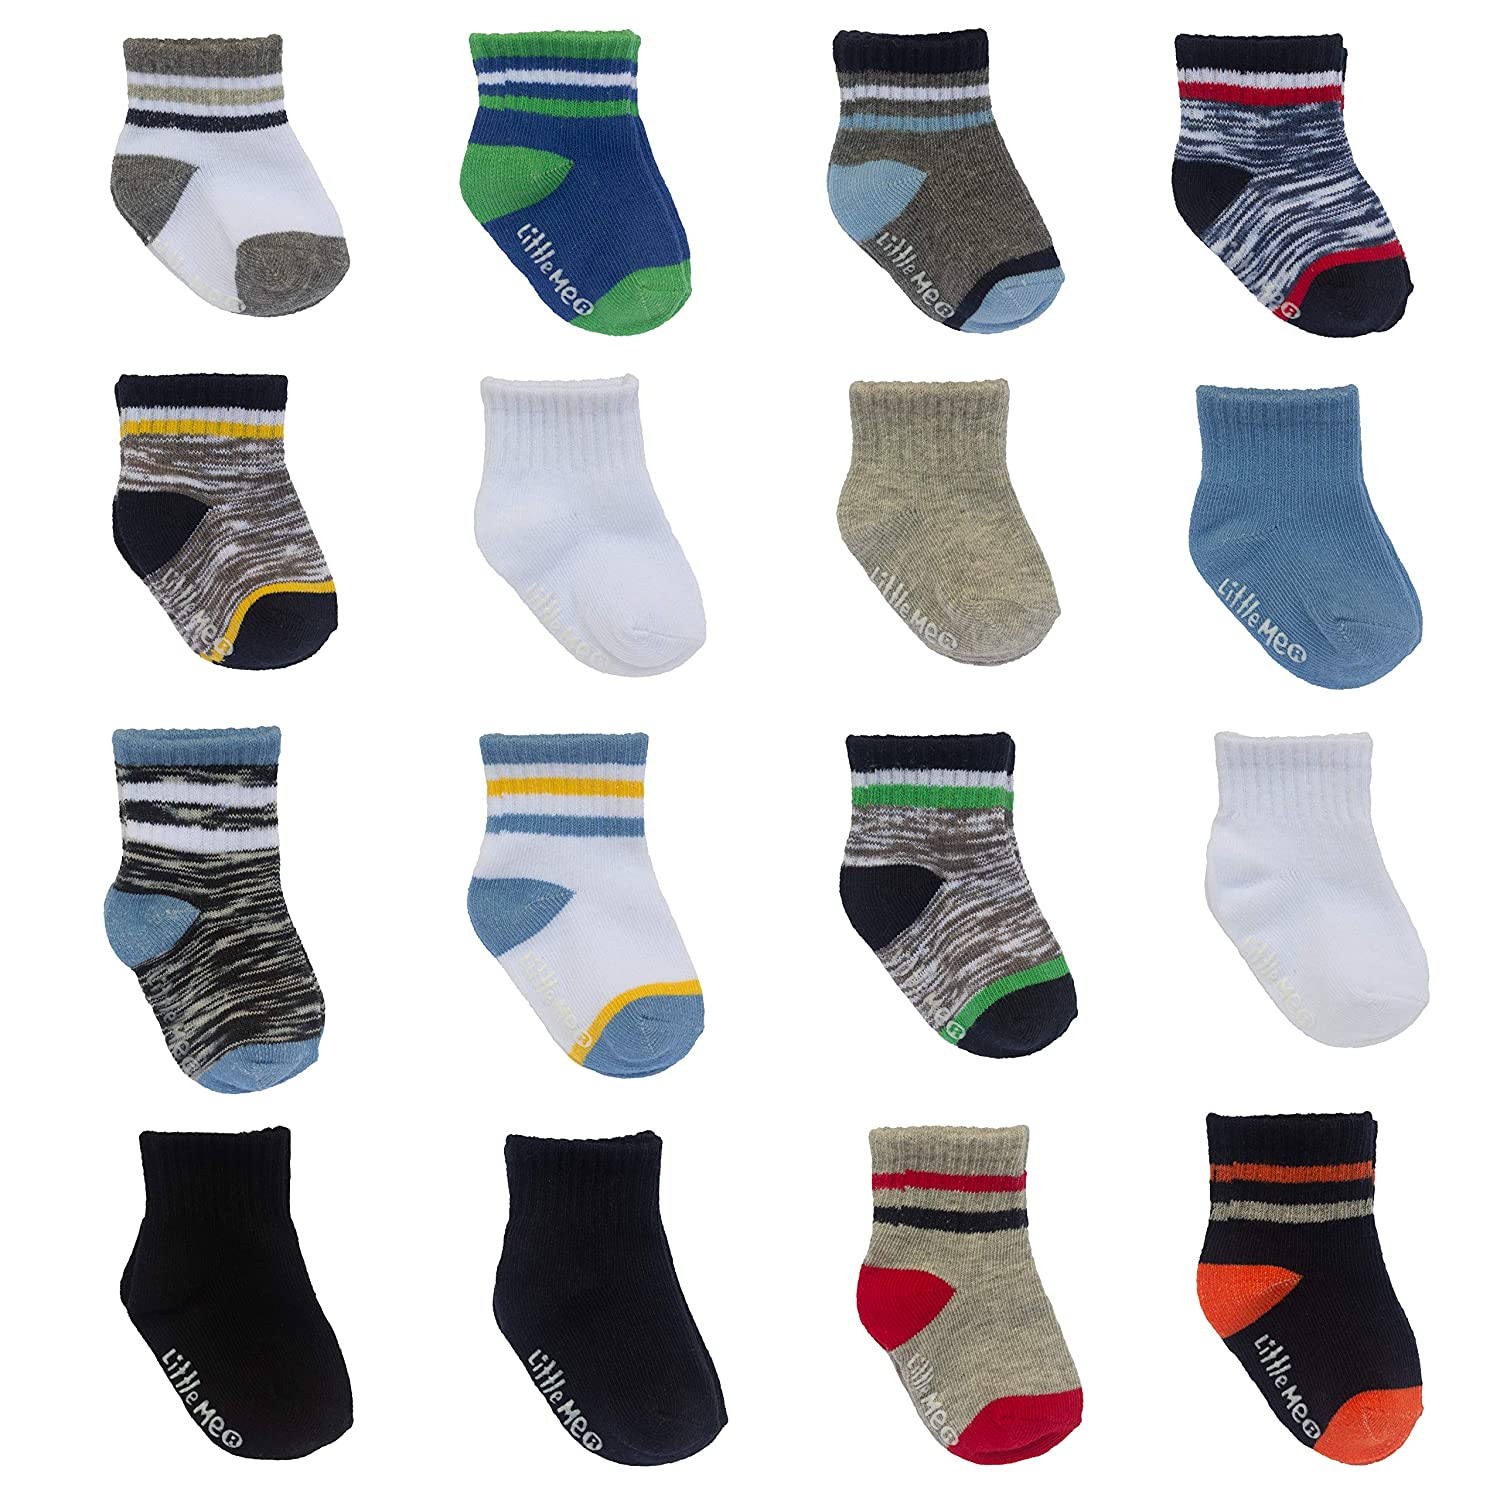 Little Me 16 Pair Baby Boy Socks 8X 0//12M /& 8X 12//24M Variety Pack